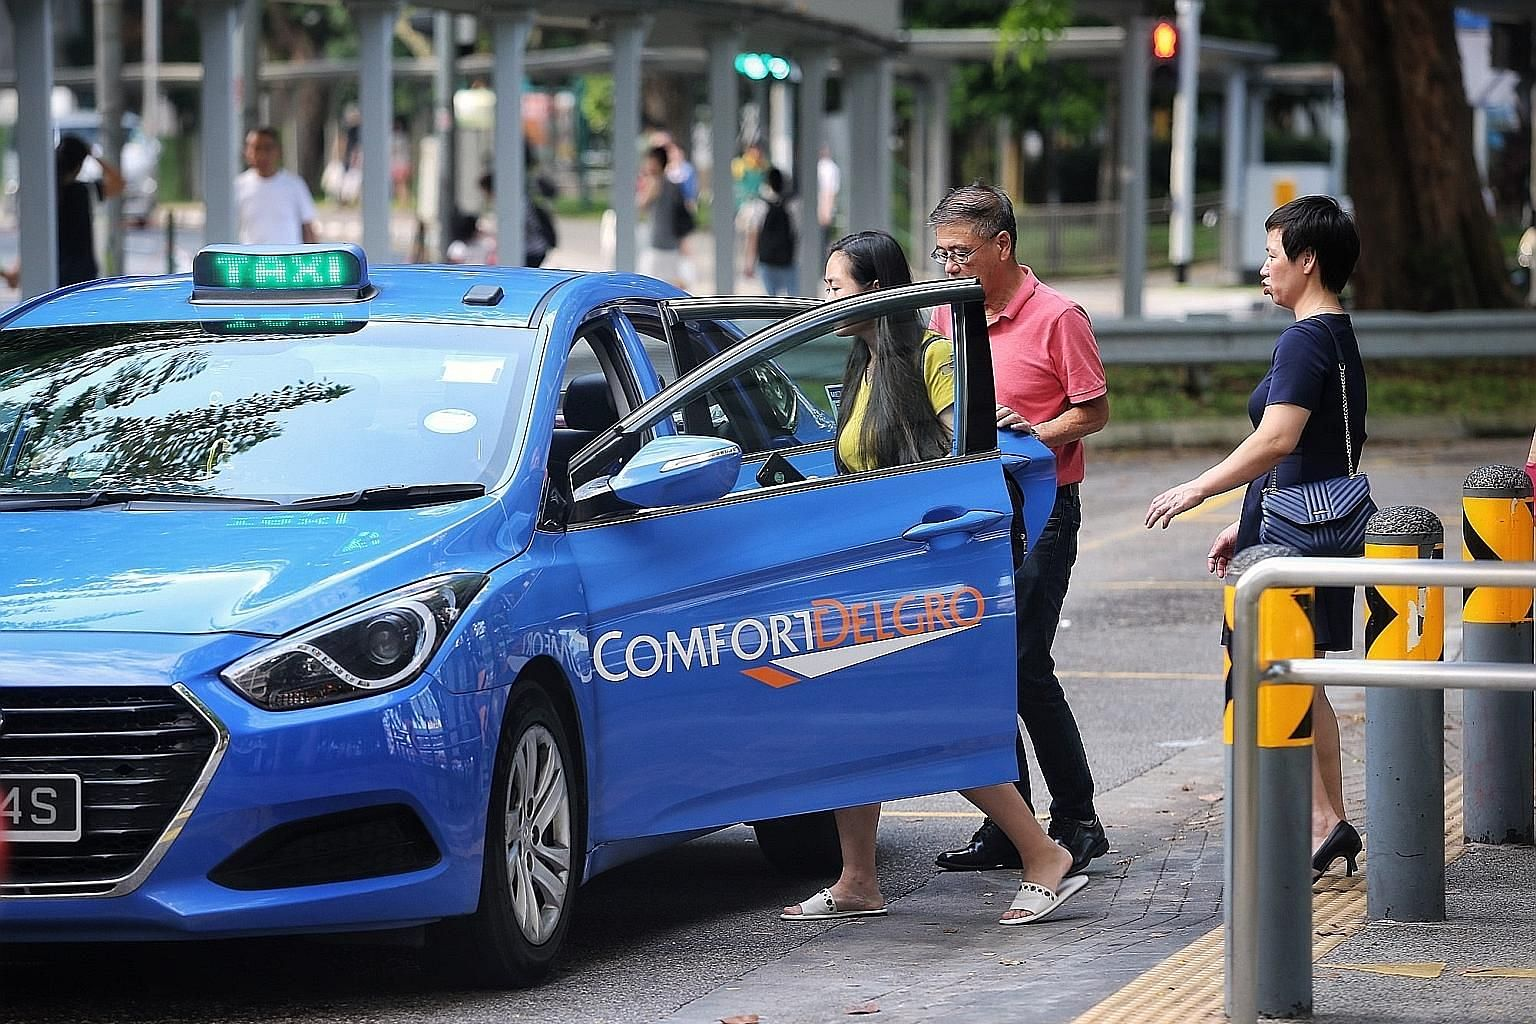 ComfortDelGro's taxi fleet here has shrunk to around 11,000 - its lowest in almost 20 years - since ride-hailing firms entered the market six years ago. The taxi business posted an operating profit of $27.4 million for the quarter, down from $33.5 mi